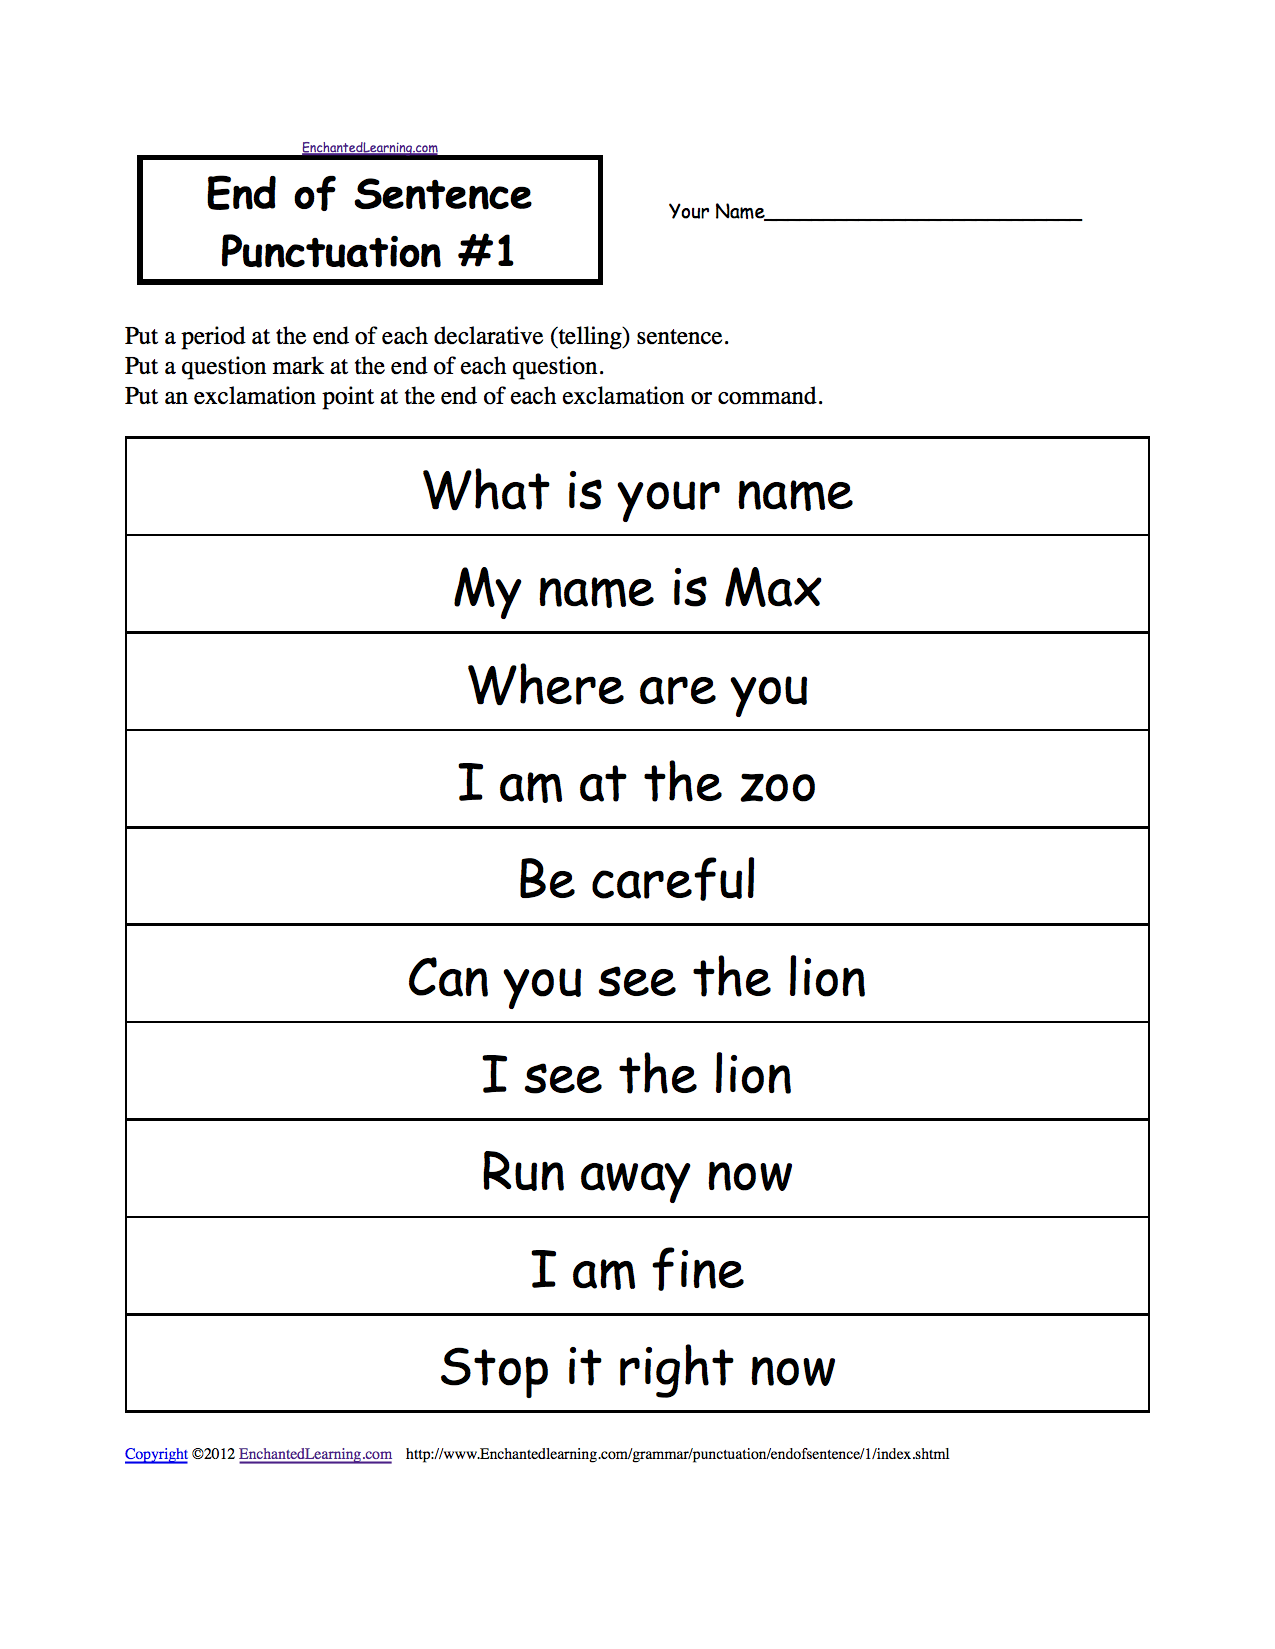 End of sentence punctuation worksheets - even different themes and holidays  to choose   Punctuation worksheets [ 1649 x 1275 Pixel ]